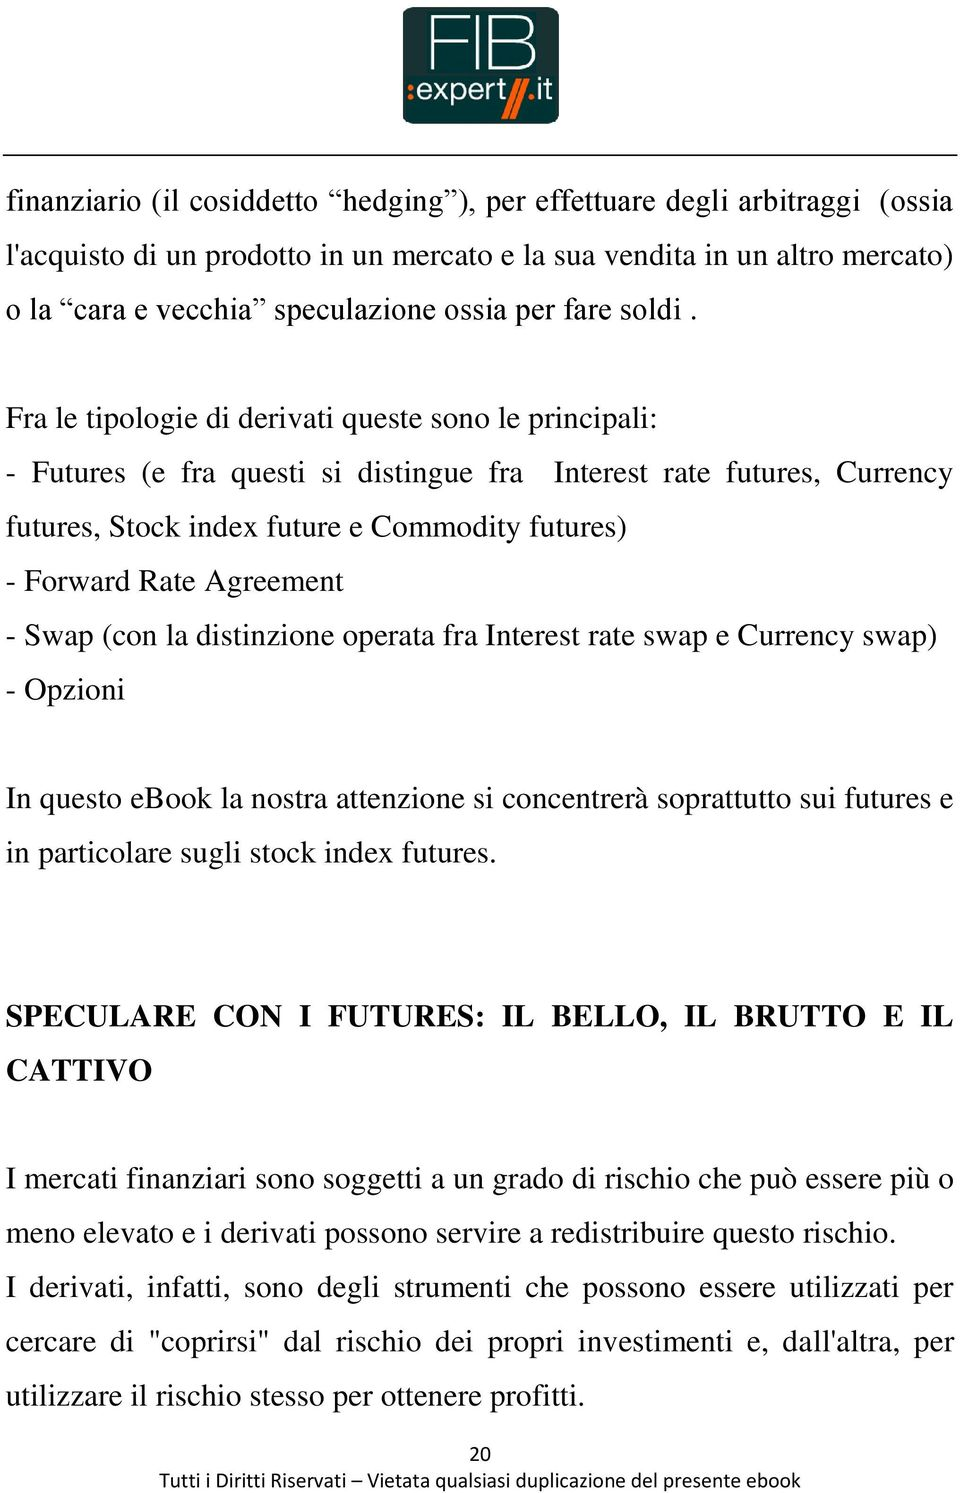 Fra le tipologie di derivati queste sono le principali: - Futures (e fra questi si distingue fra Interest rate futures, Currency futures, Stock index future e Commodity futures) - Forward Rate